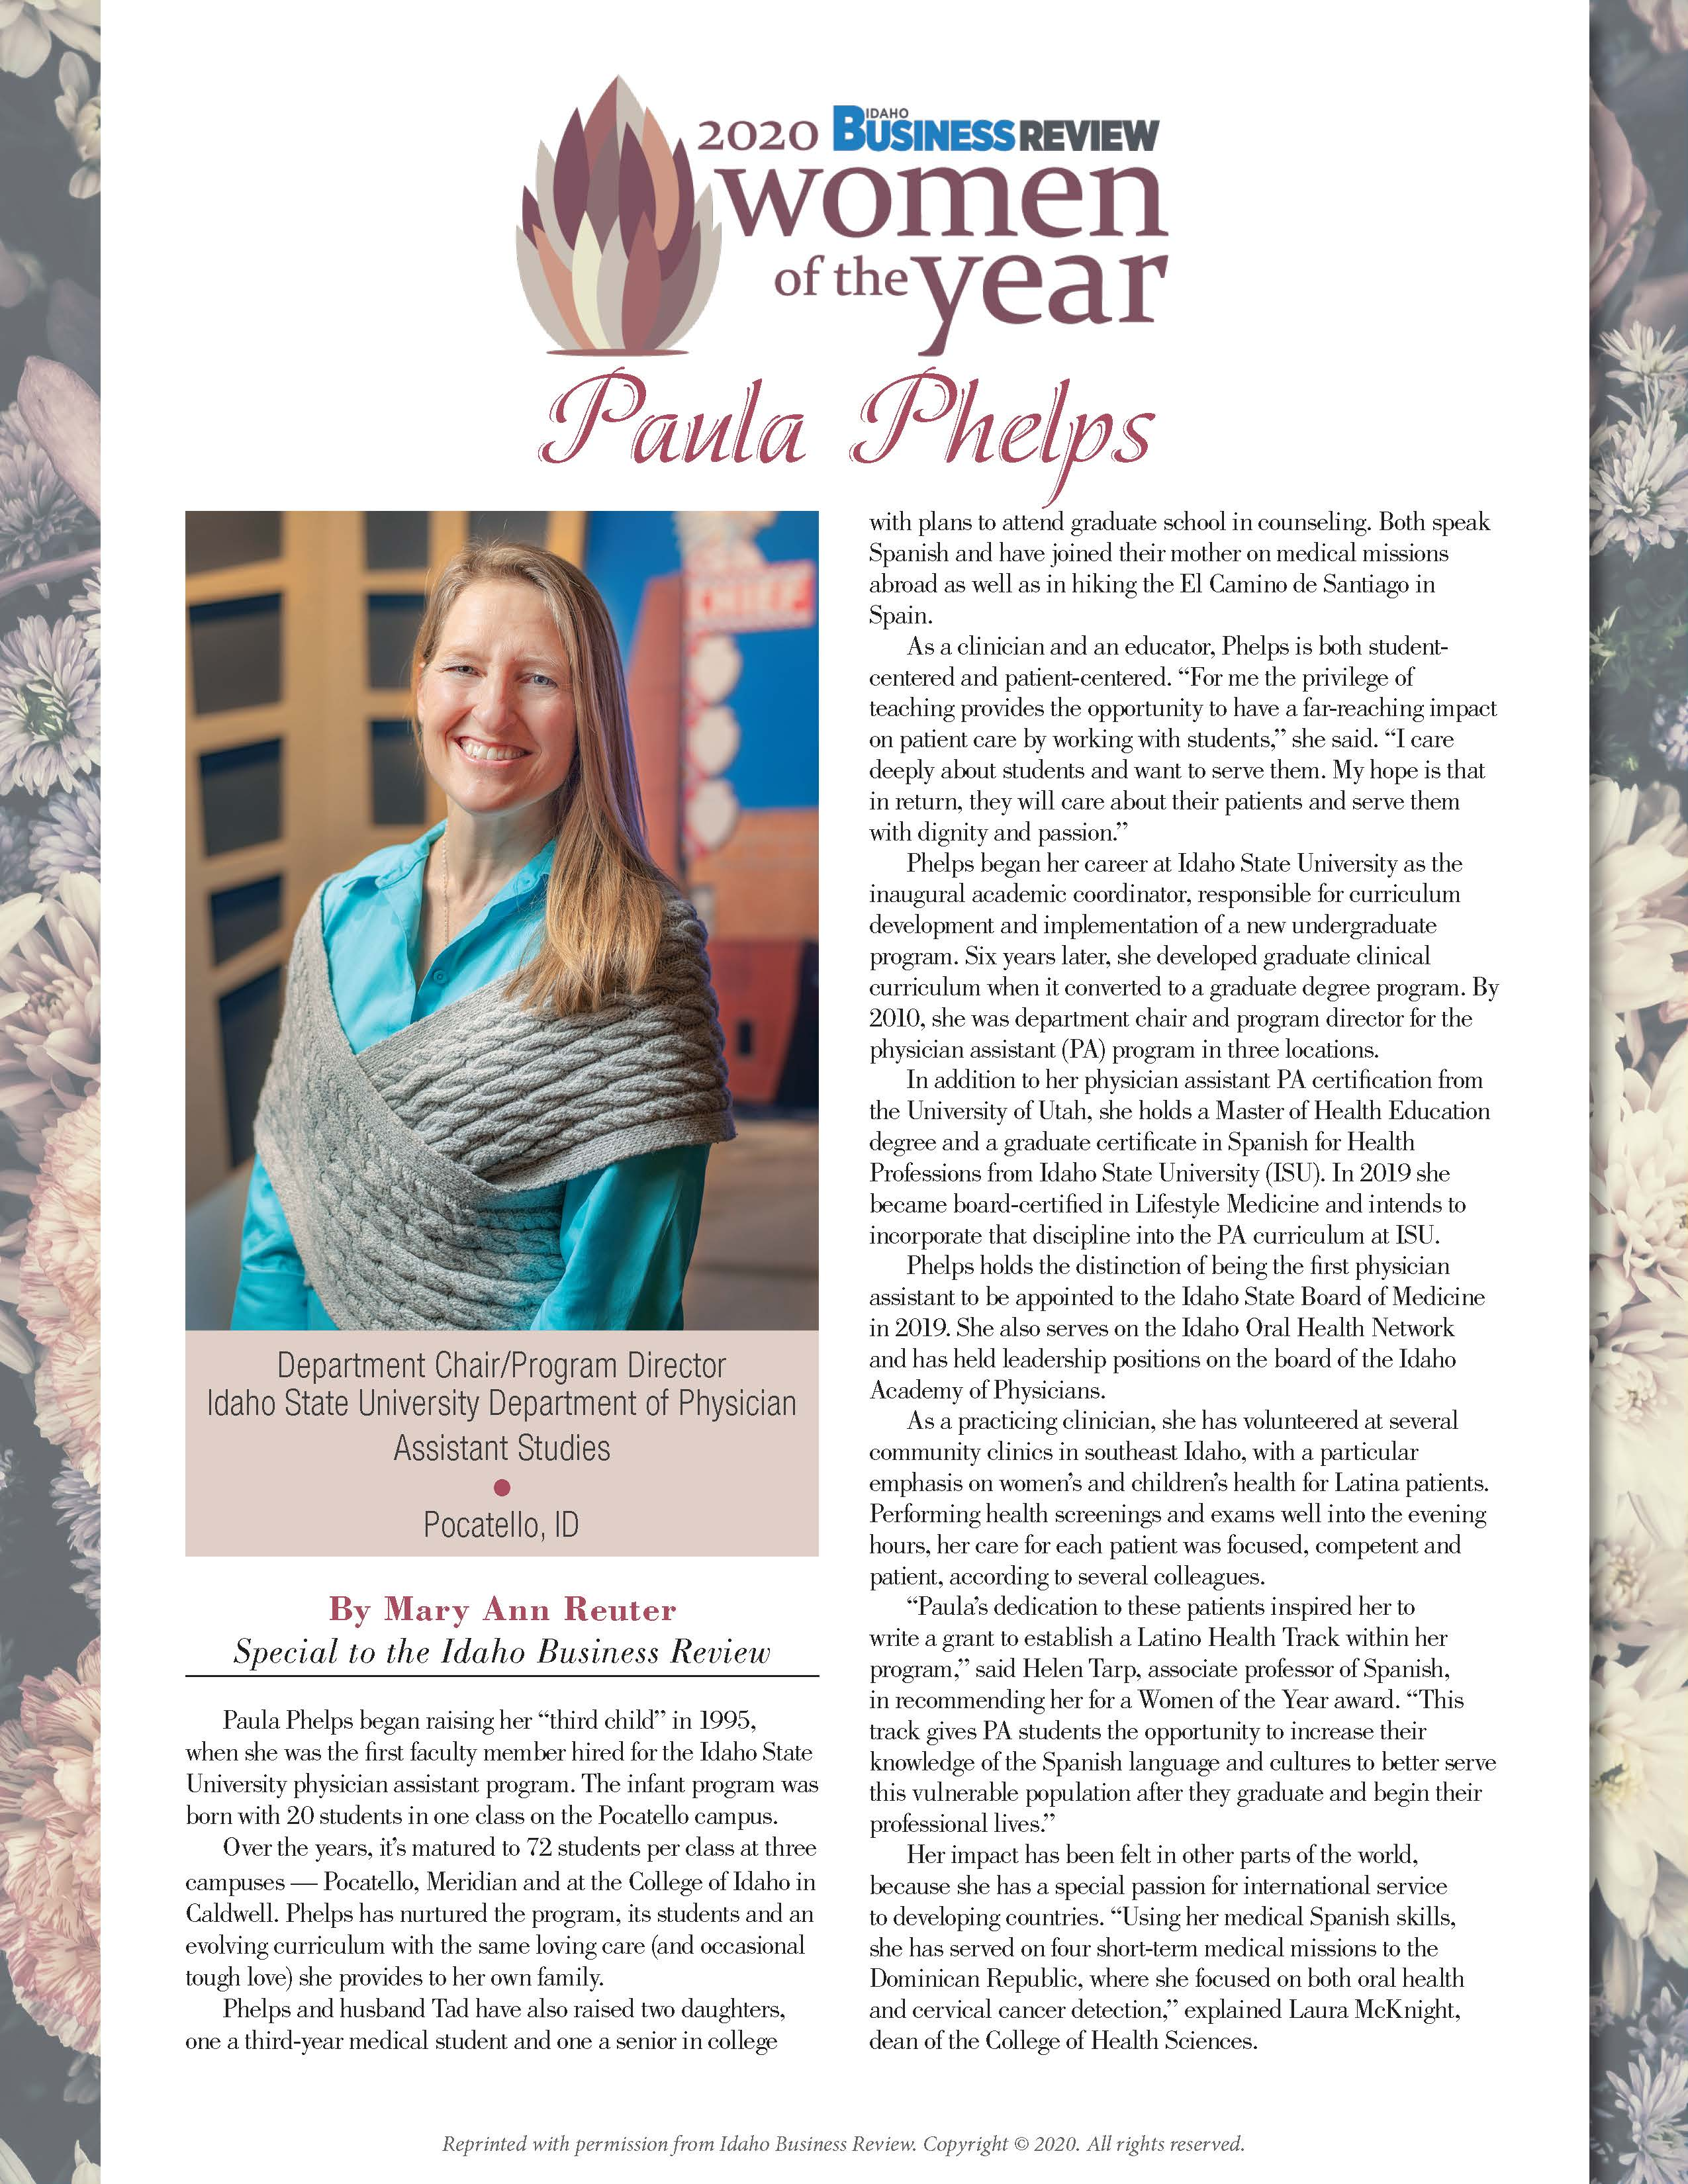 Women of the Year magazine page featuring Paula Phelps with photo and bio